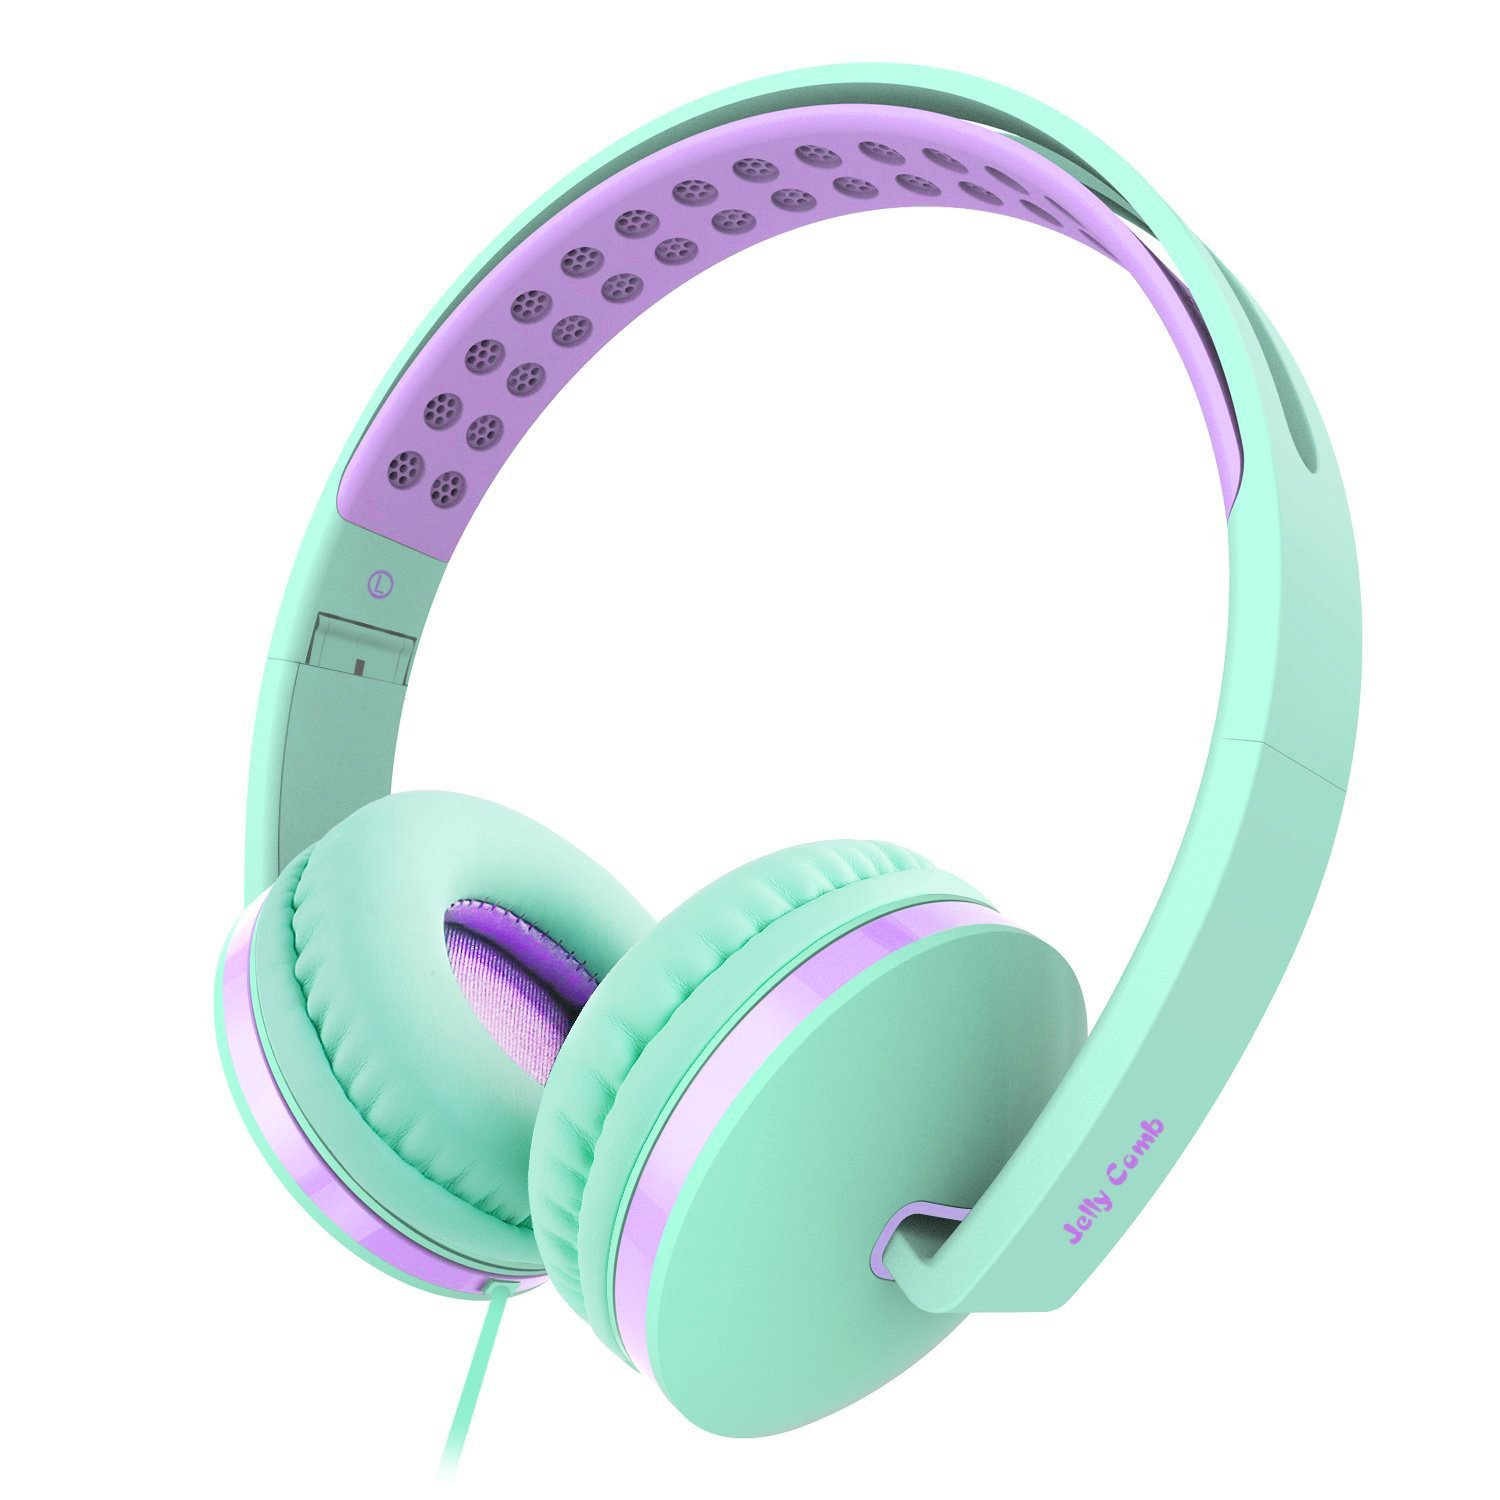 On Ear Headphones with Mic, Jelly Comb Foldable Corded Headphones Wired Headsets with Microphone, Volume Control for Cell Phone, Tablet, PC, Laptop, MP3/4, Video Game (Green & Purple) by Jelly Comb